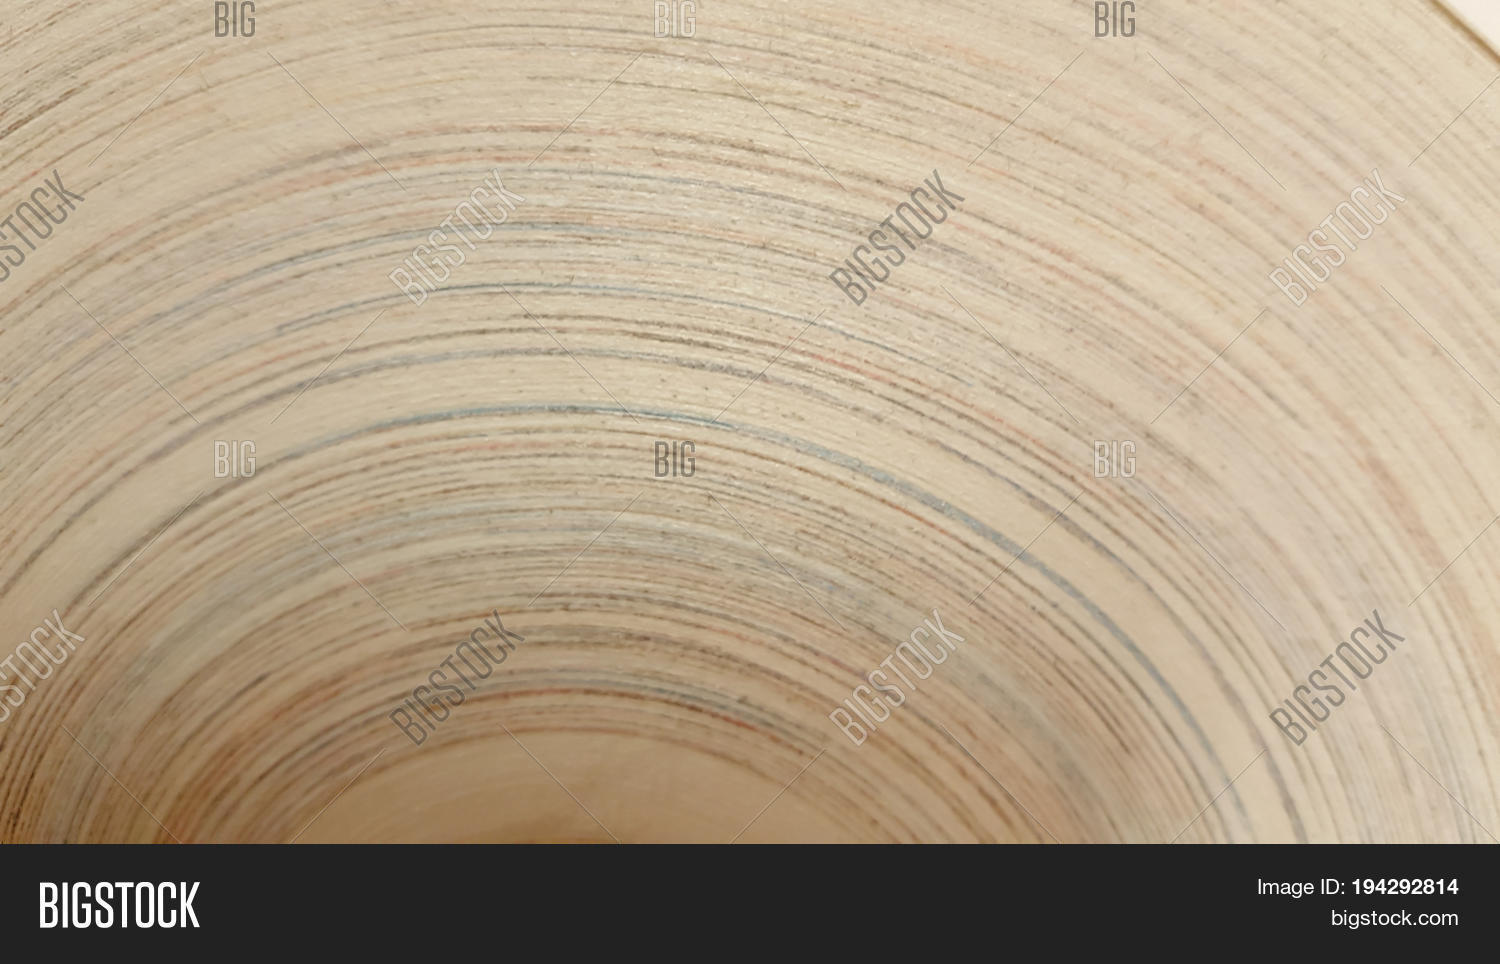 Paper Roll Texture Image & Photo (Free Trial) | Bigstock